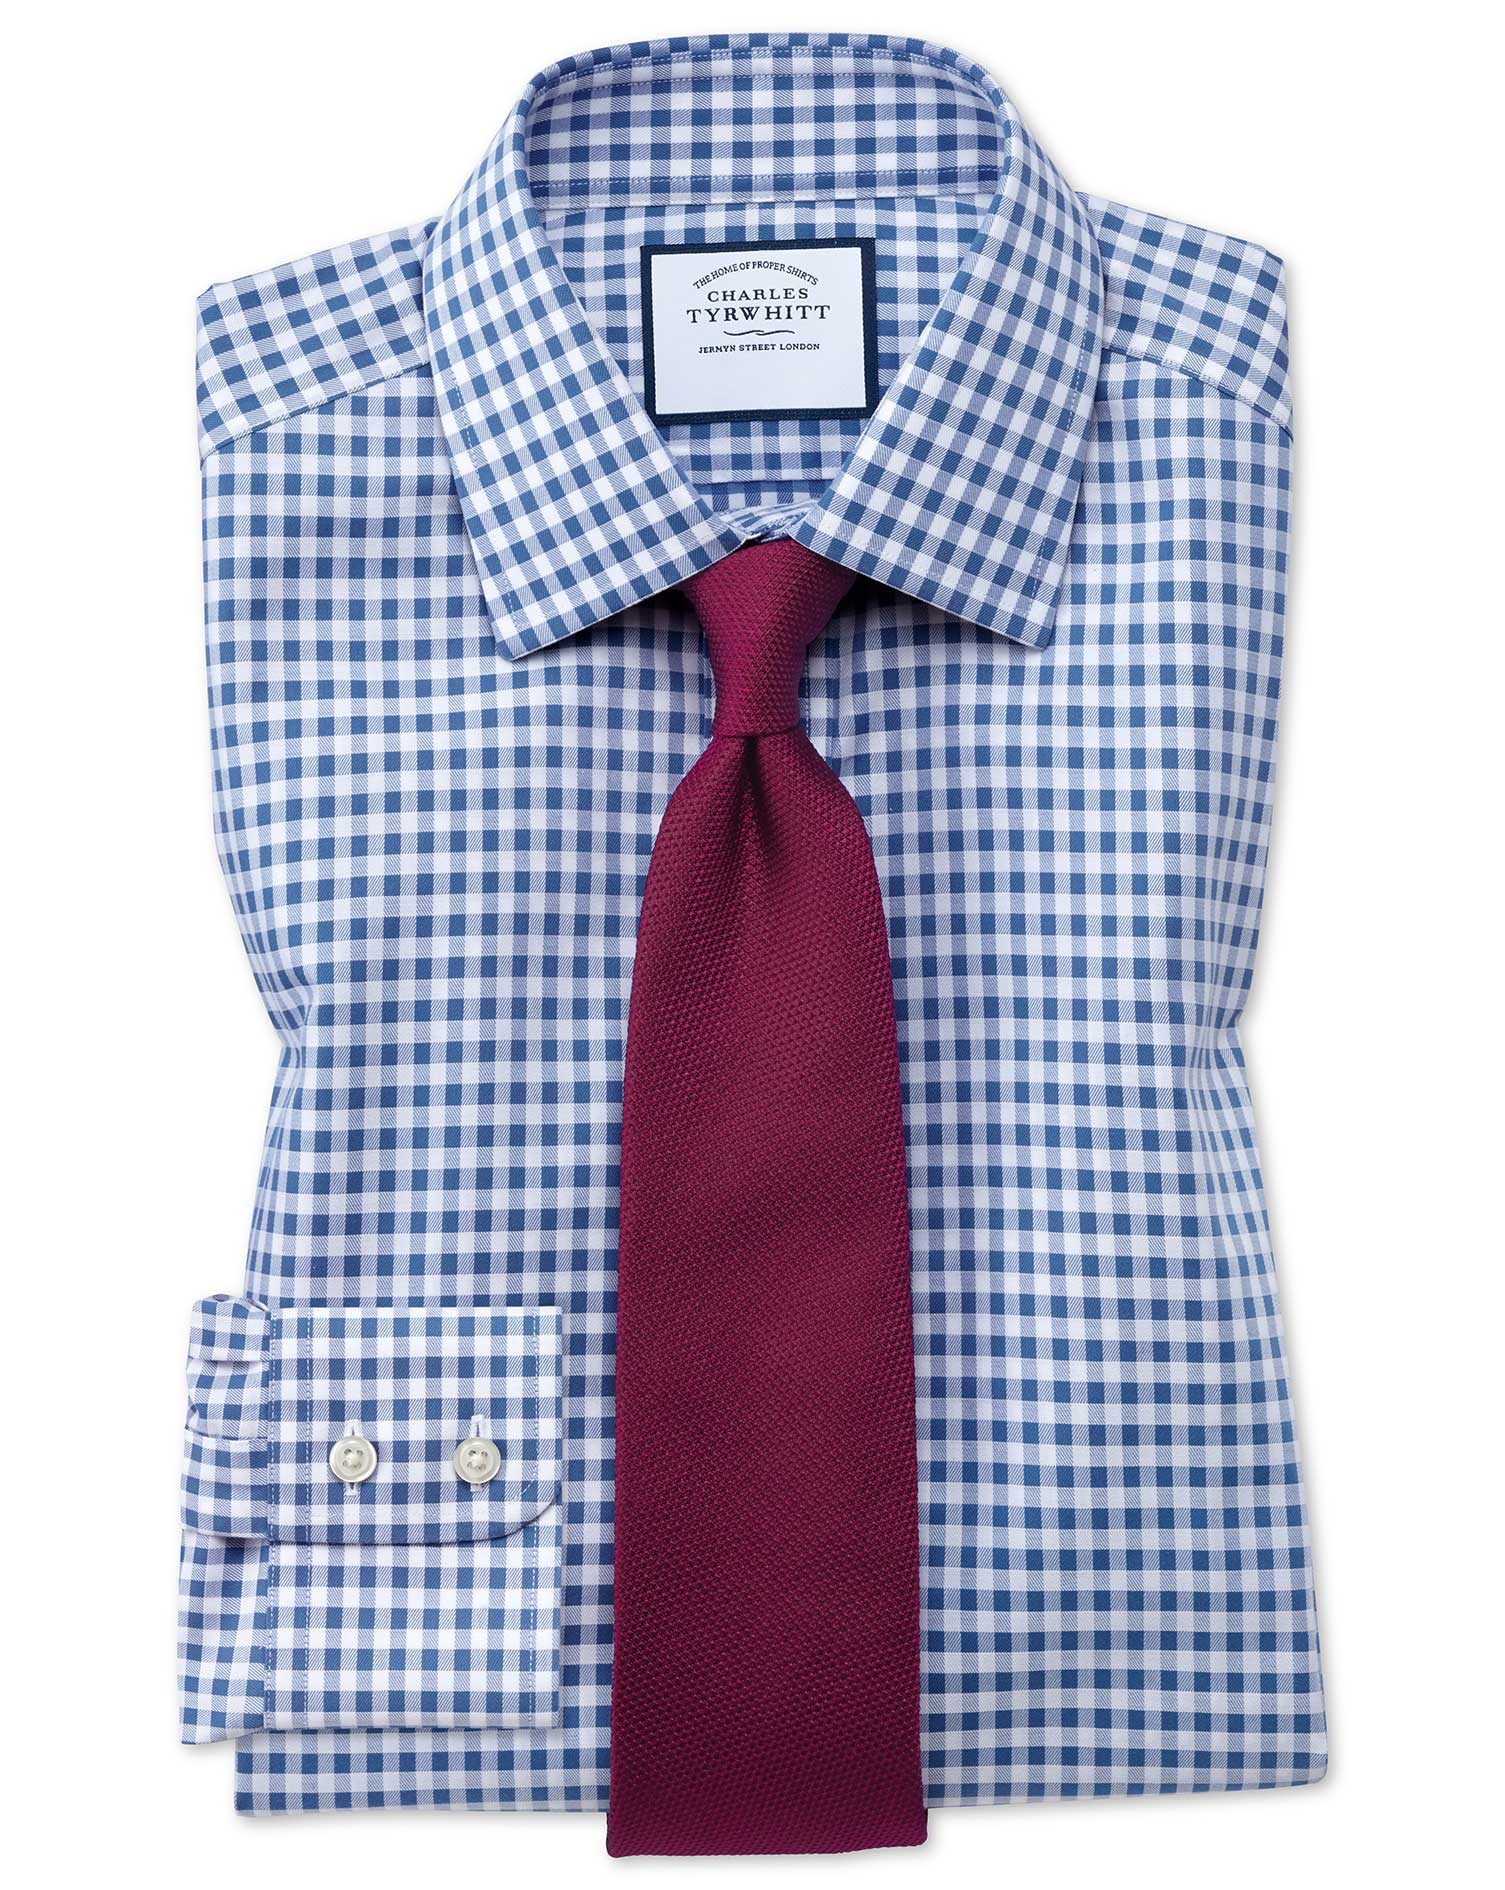 Slim Fit Non-Iron Gingham Mid Blue Cotton Formal Shirt Single Cuff Size 16/32 by Charles Tyrwhitt